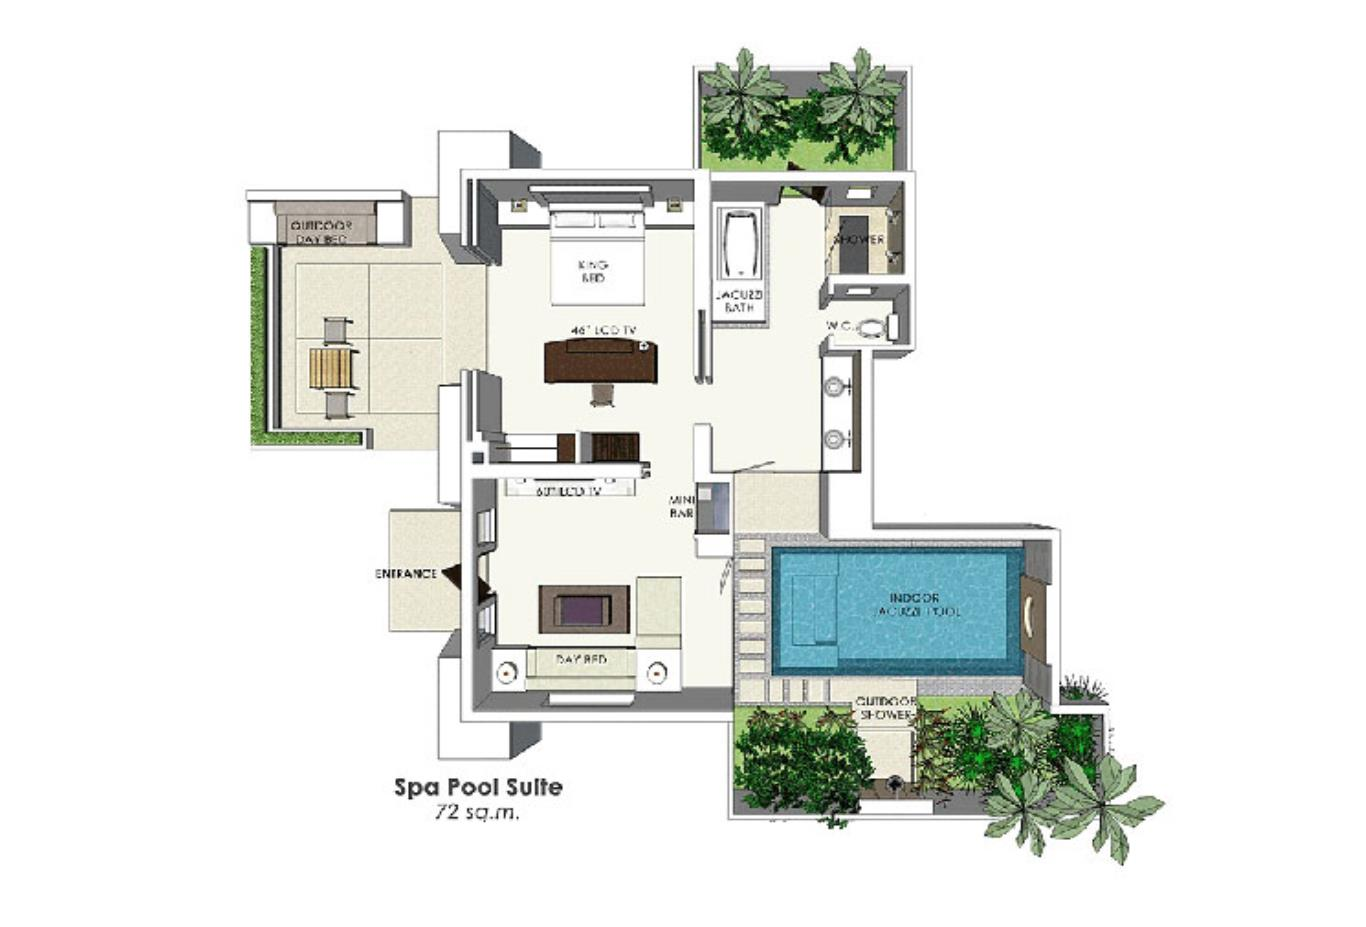 Spa Pool Suite floorplan